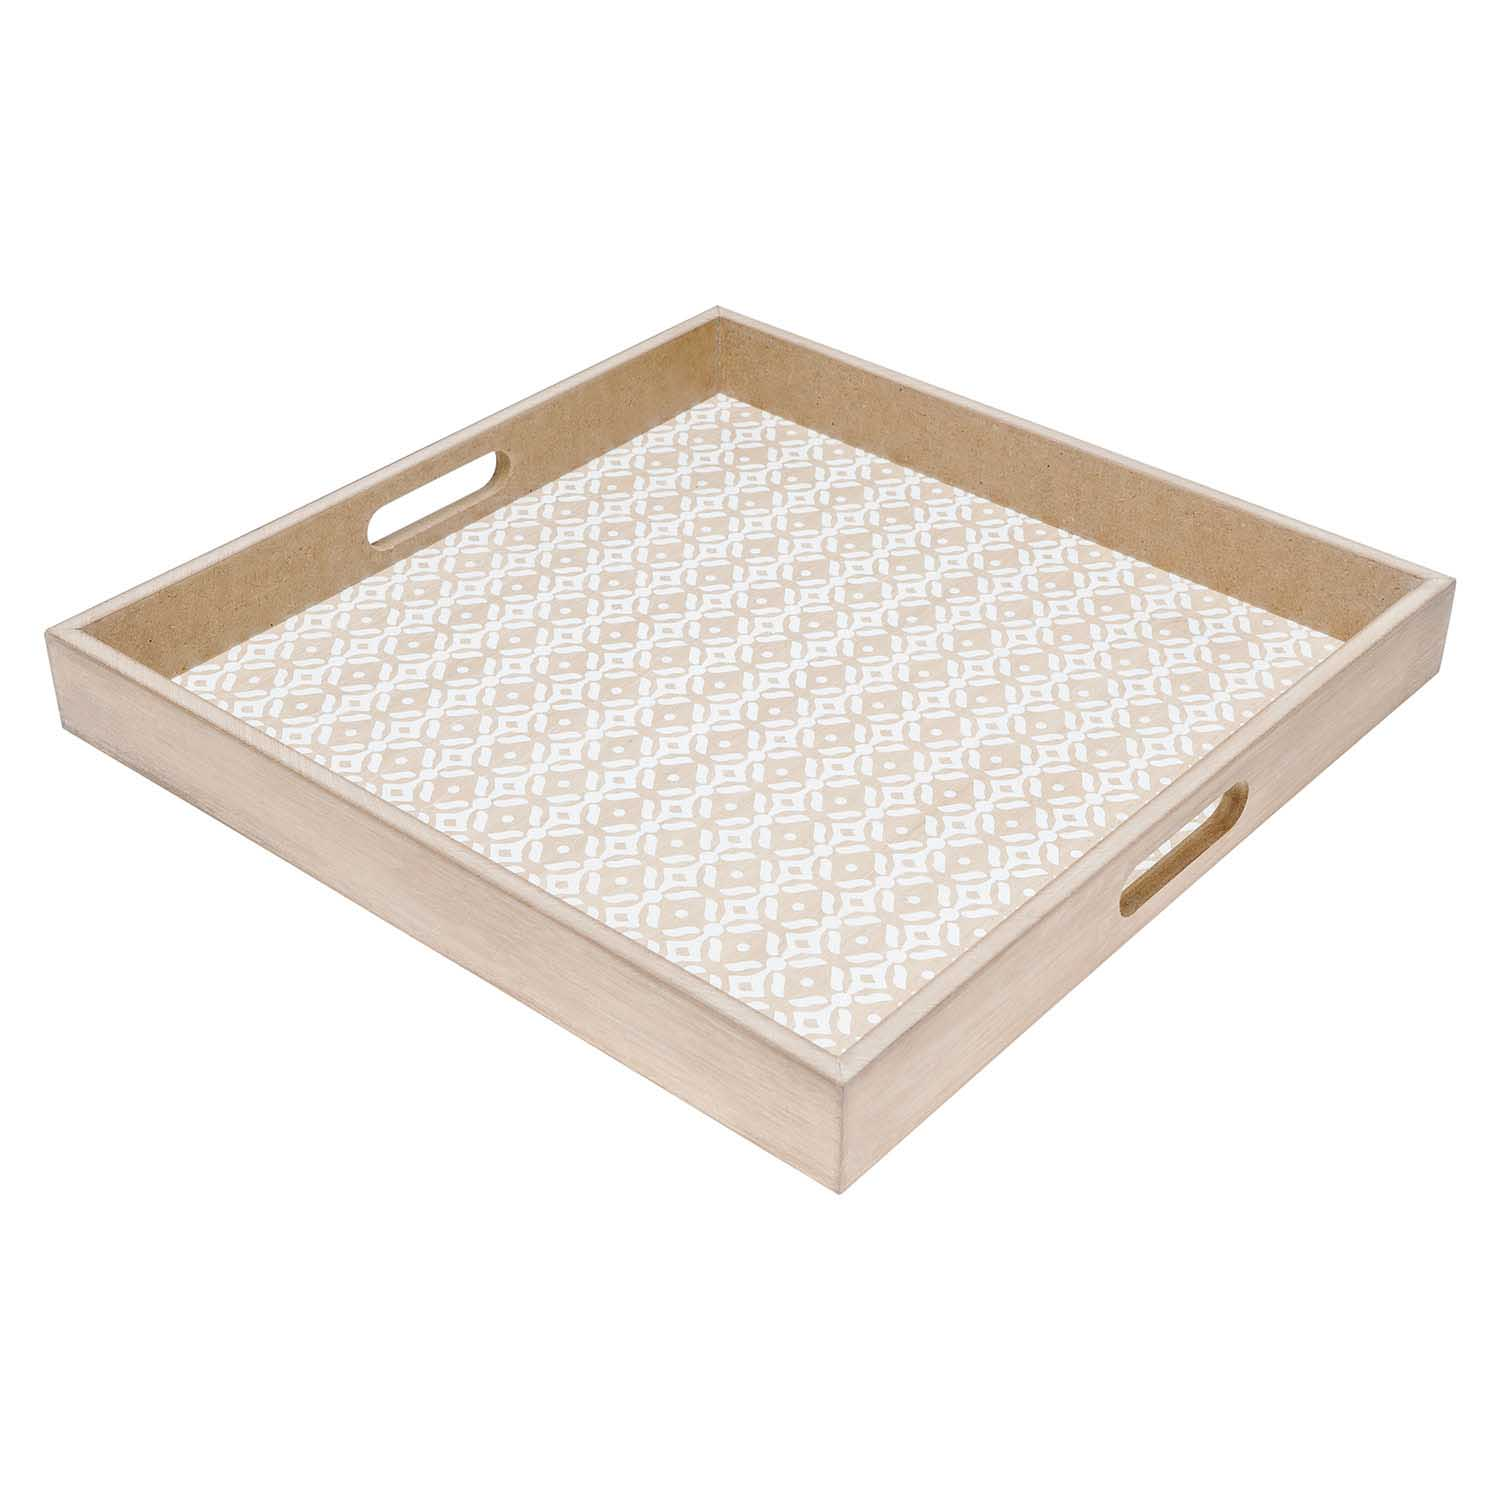 ood Serving Tray Natural Color MDF Chapado Square - Nordic-style print Vintage Retro Ethnic Model Ma